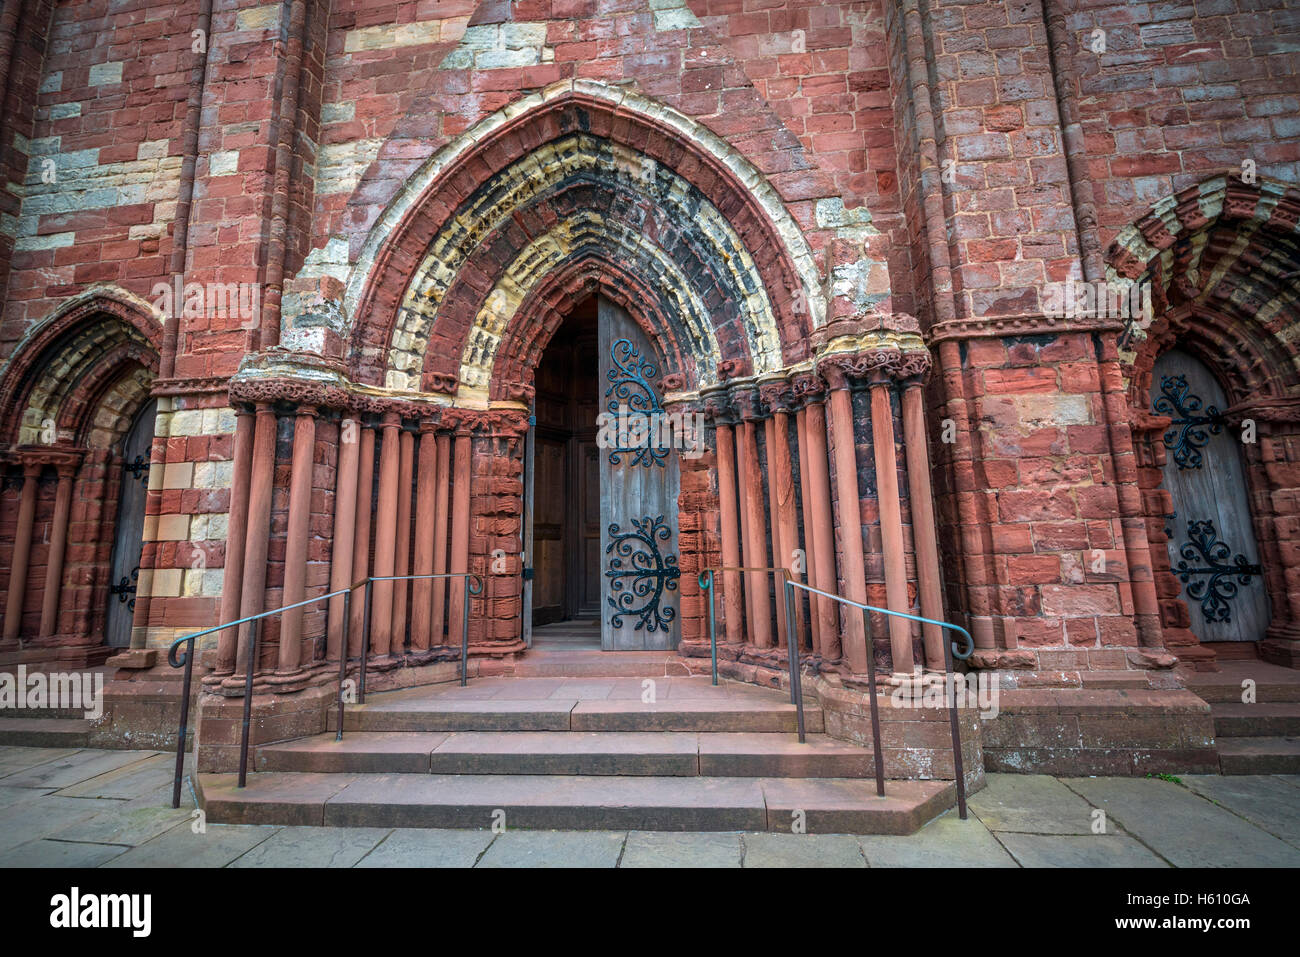 The entrance to Saint Magnus Cathedral in Kirkwall, Mainland Orkney, Scotland, UK - Stock Image